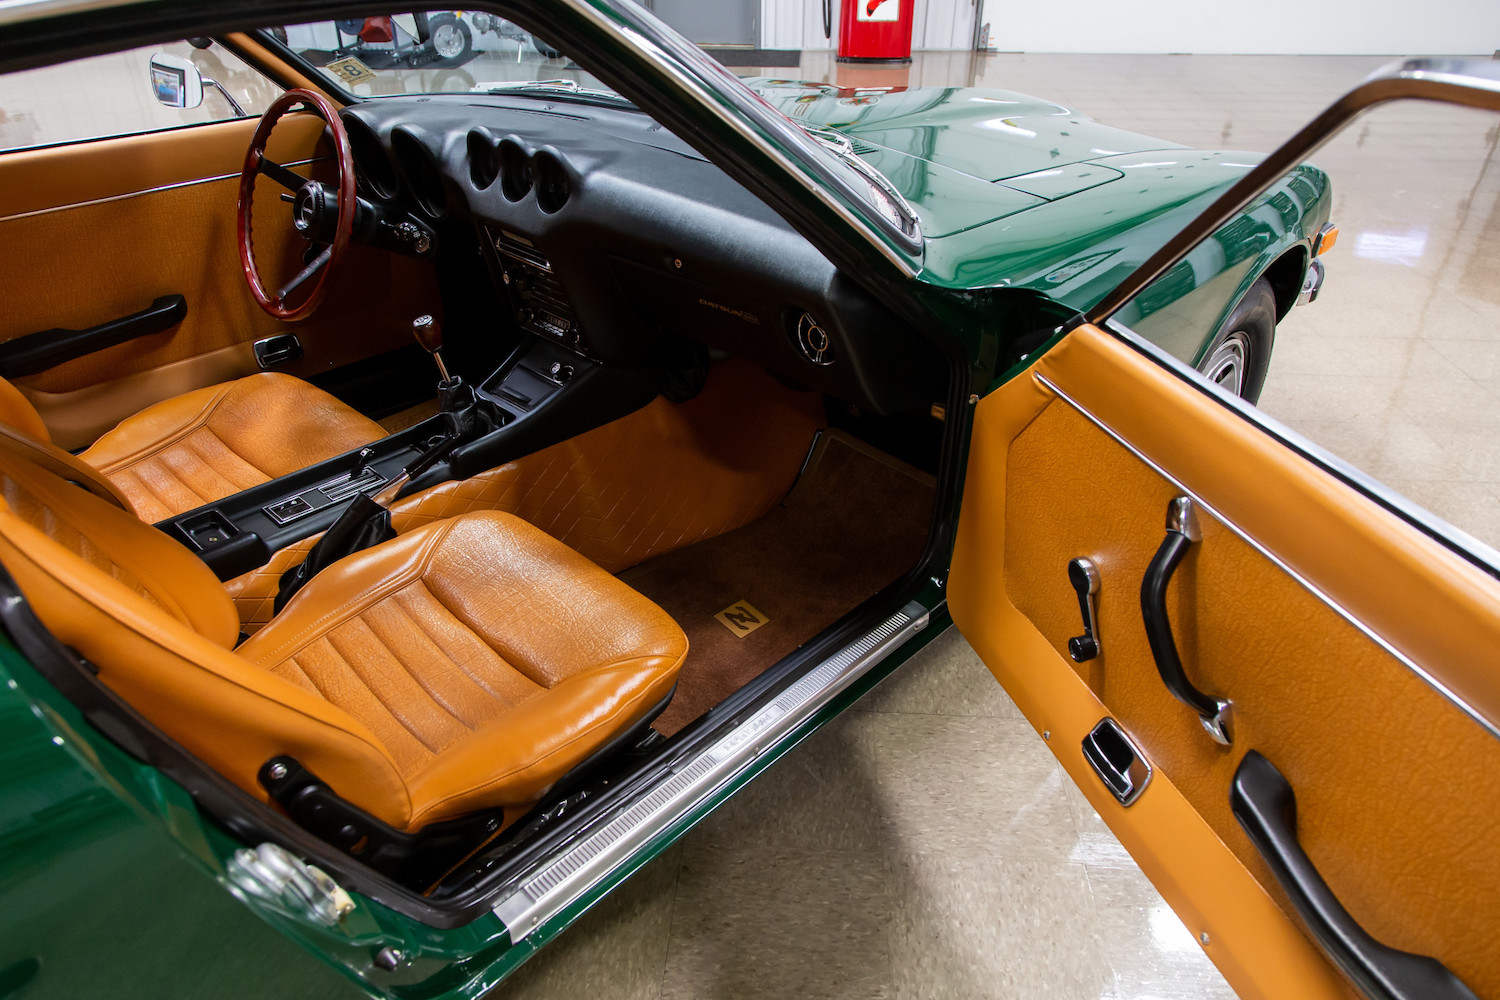 1971 Datsun 240Z Series I open door interior